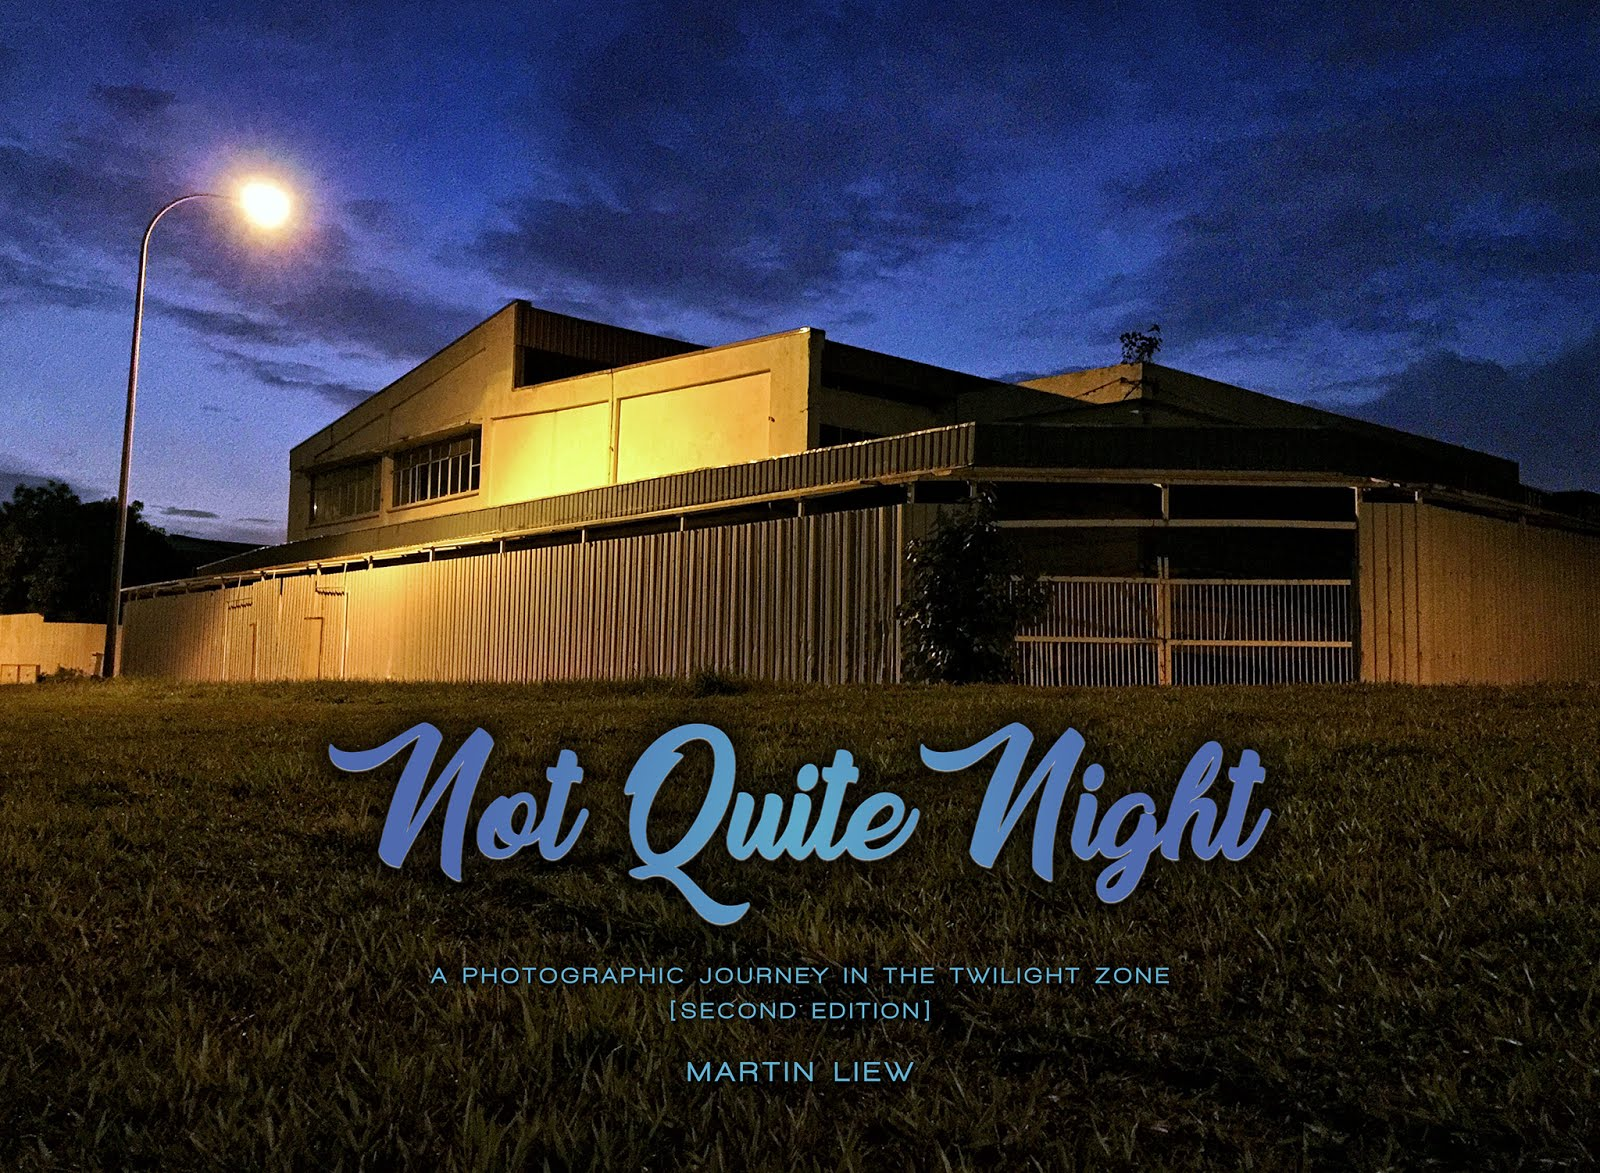 NOT QUITE NIGHT (Second Edition)